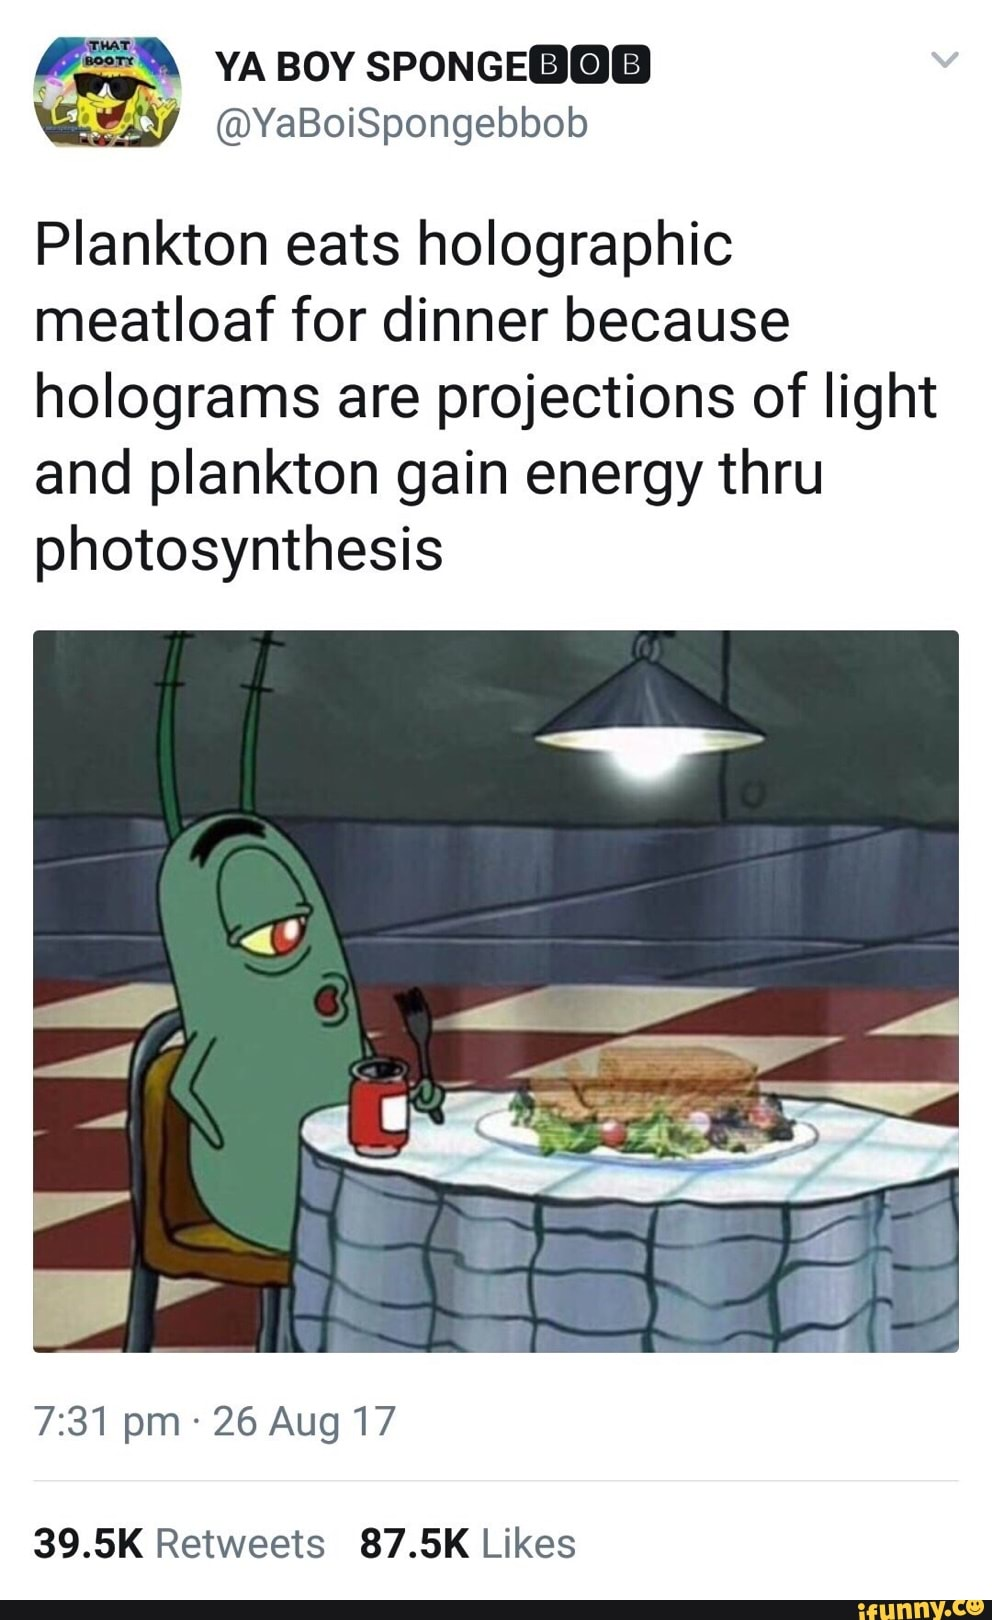 Spongebob Holographic Meatloaf : spongebob, holographic, meatloaf, Plankton, Holographic, Meatloaf, Dinner, Because, Holograms, Projections, Light, Energy, Photosynthesis, 39.5K, Retweets, 87.5K, Likes, IFunny